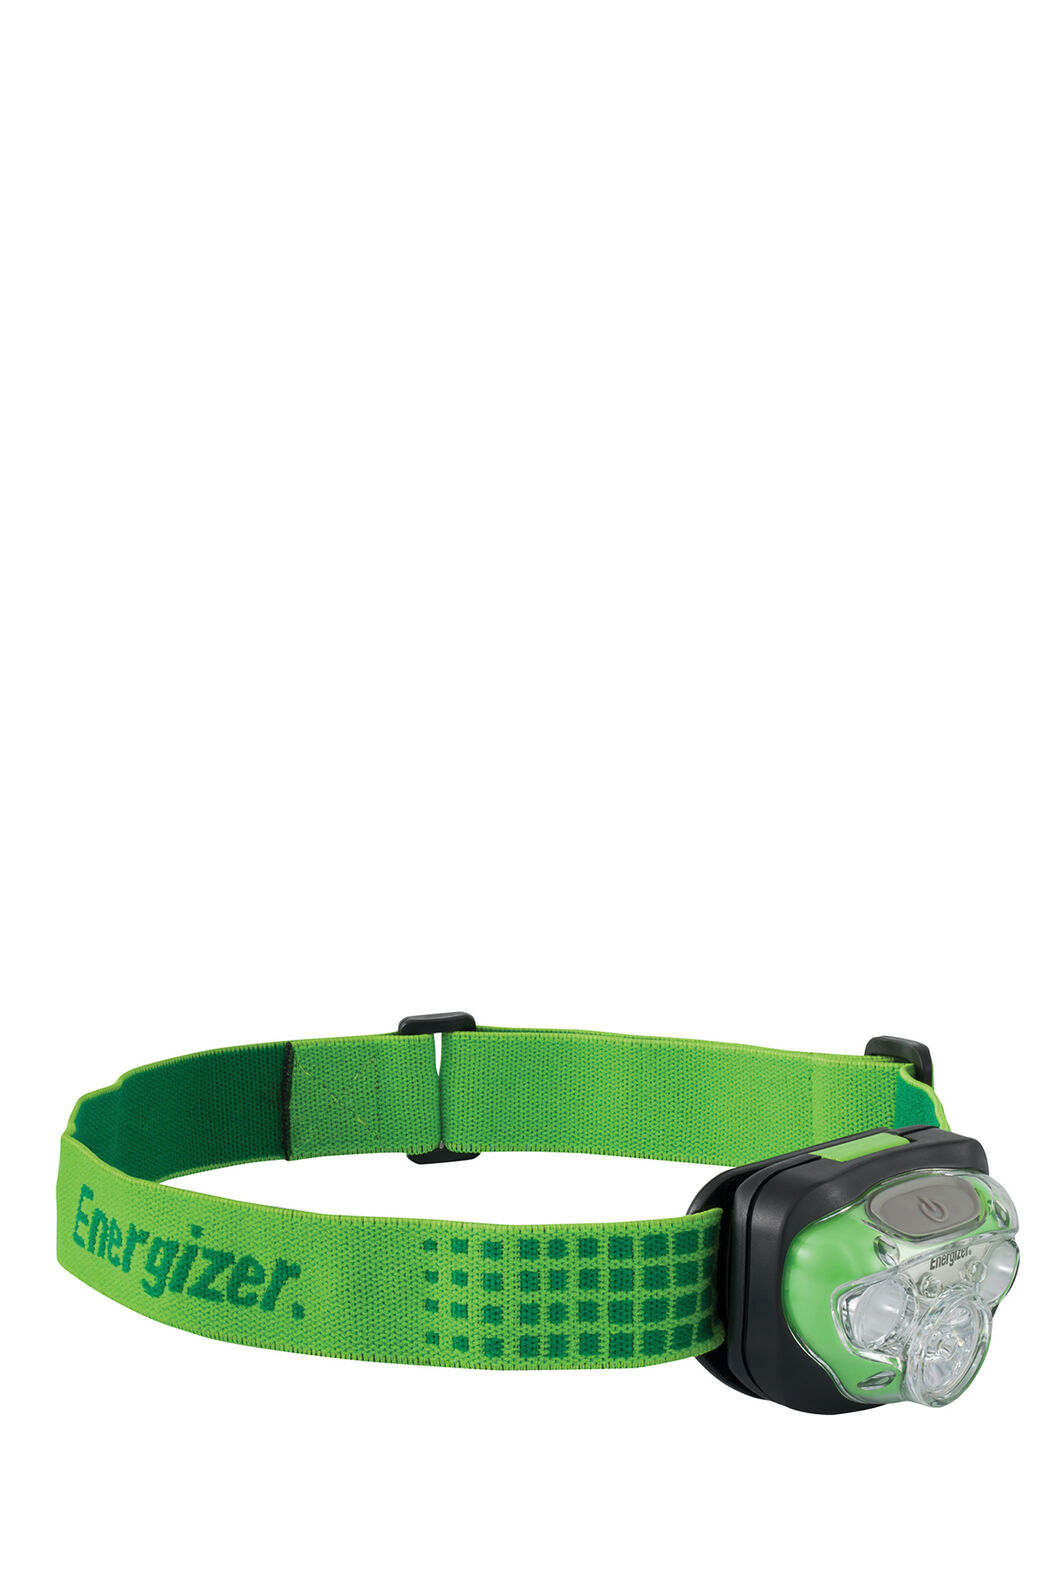 Energizer Vision HD Headlamp, None, hi-res